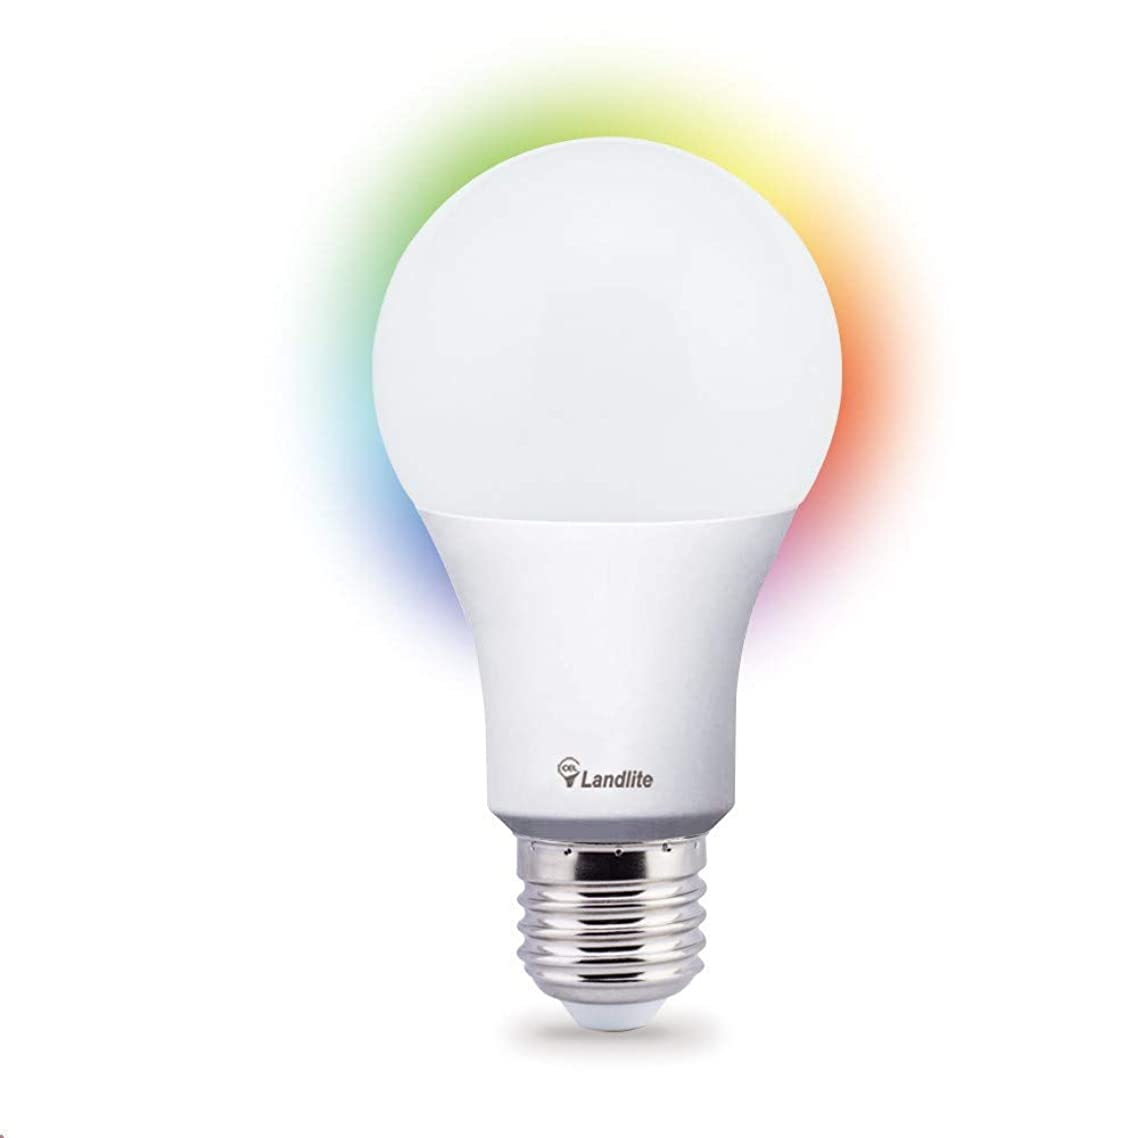 New Landlite LED Energy Saving 22,000hr Smart Wi-Fi Bulb Wireless Handfree Control ANYWHERE with Alexa and Google, IOS, Android No Hub required.